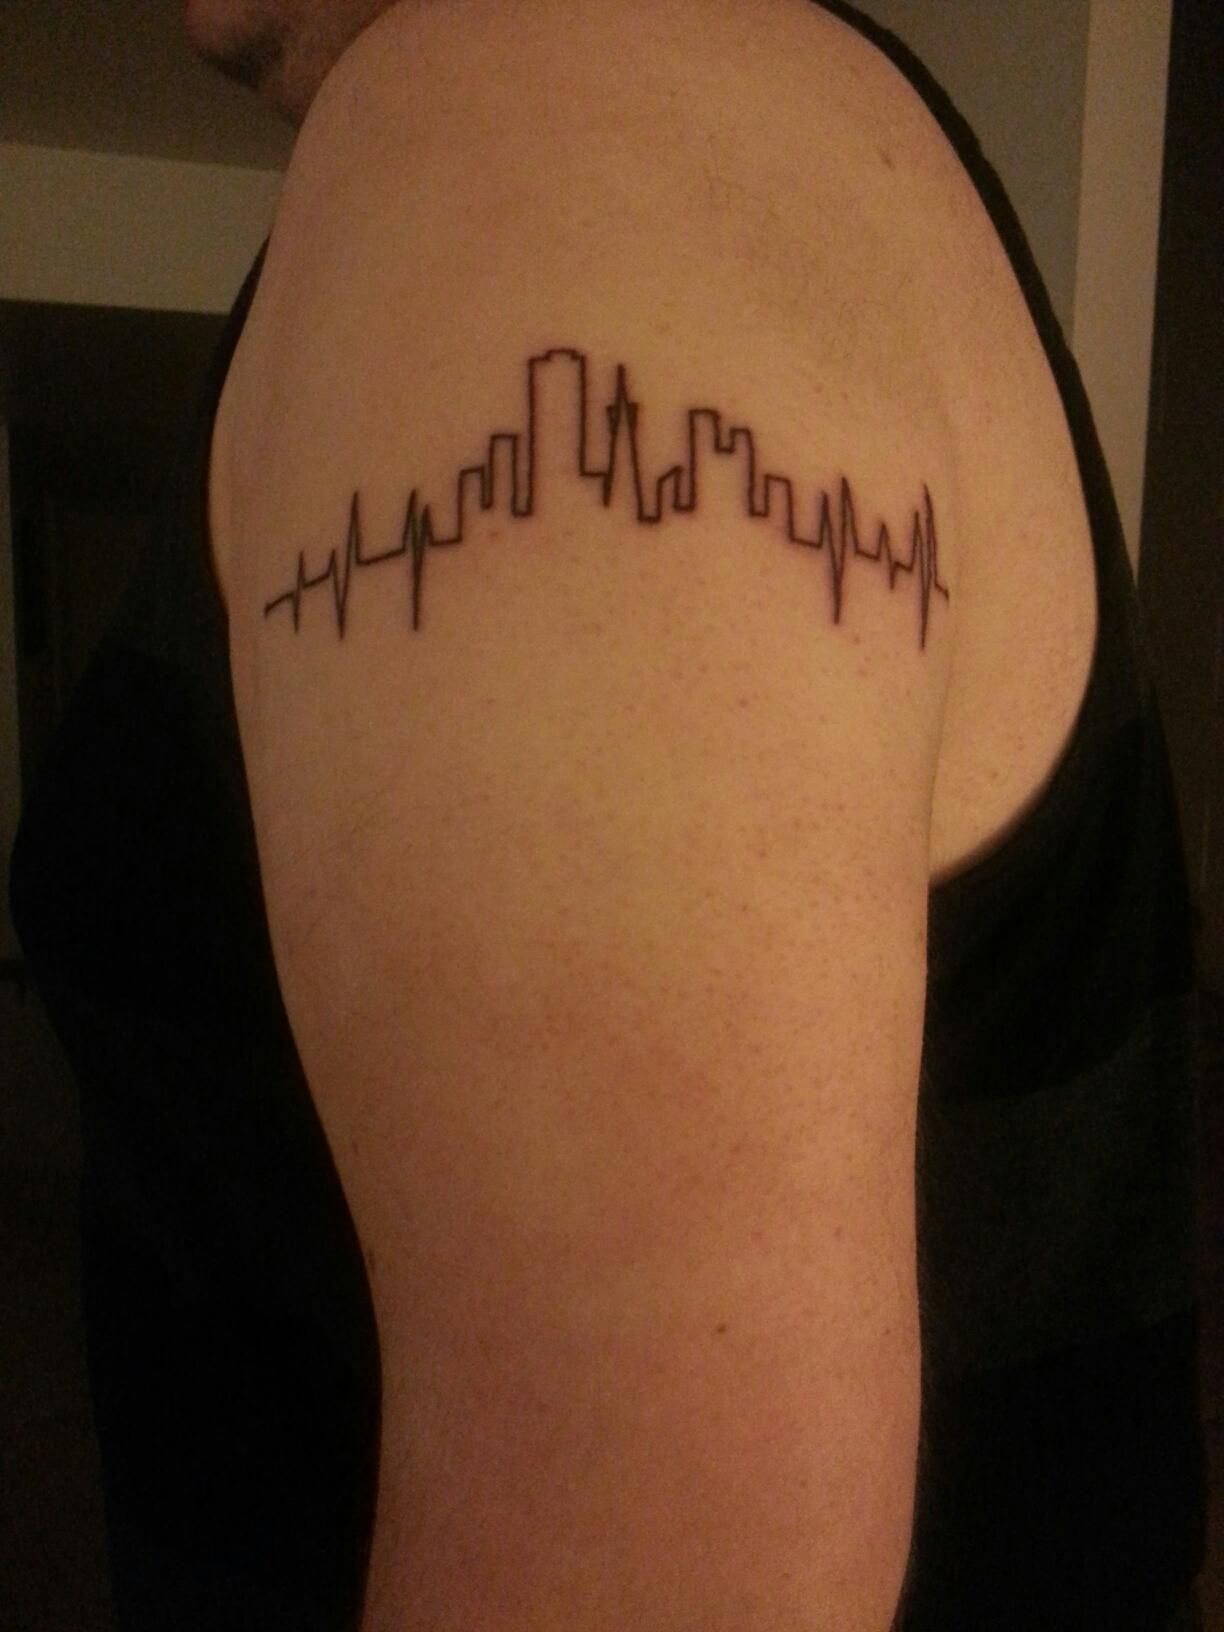 Just Got This Tattoo Heartbeat With San Francisco Skyline Ideas And Designs